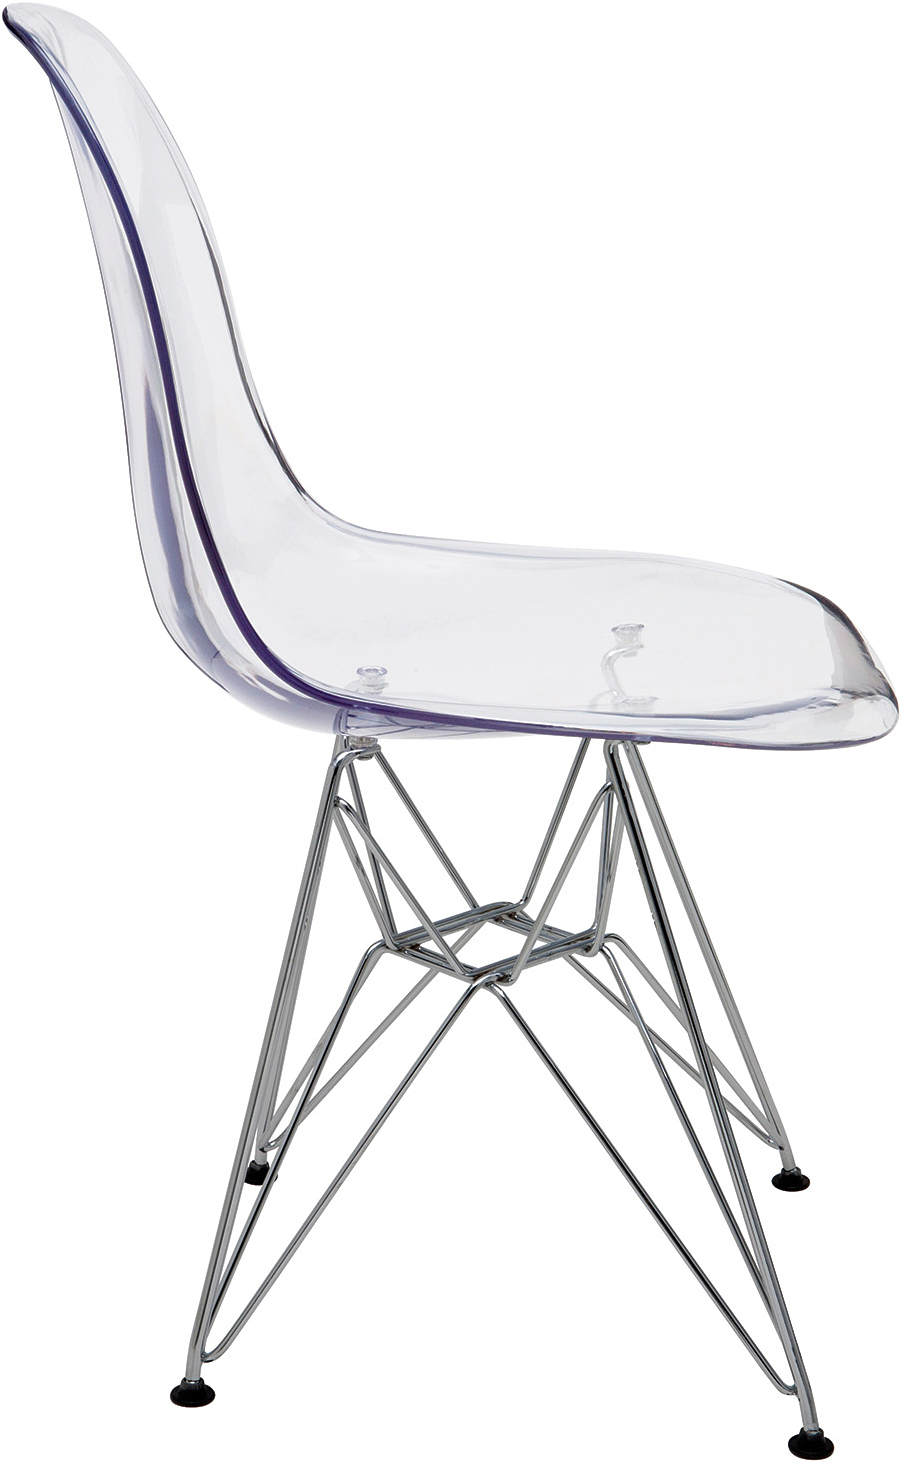 beautifully engineered clear molded chair